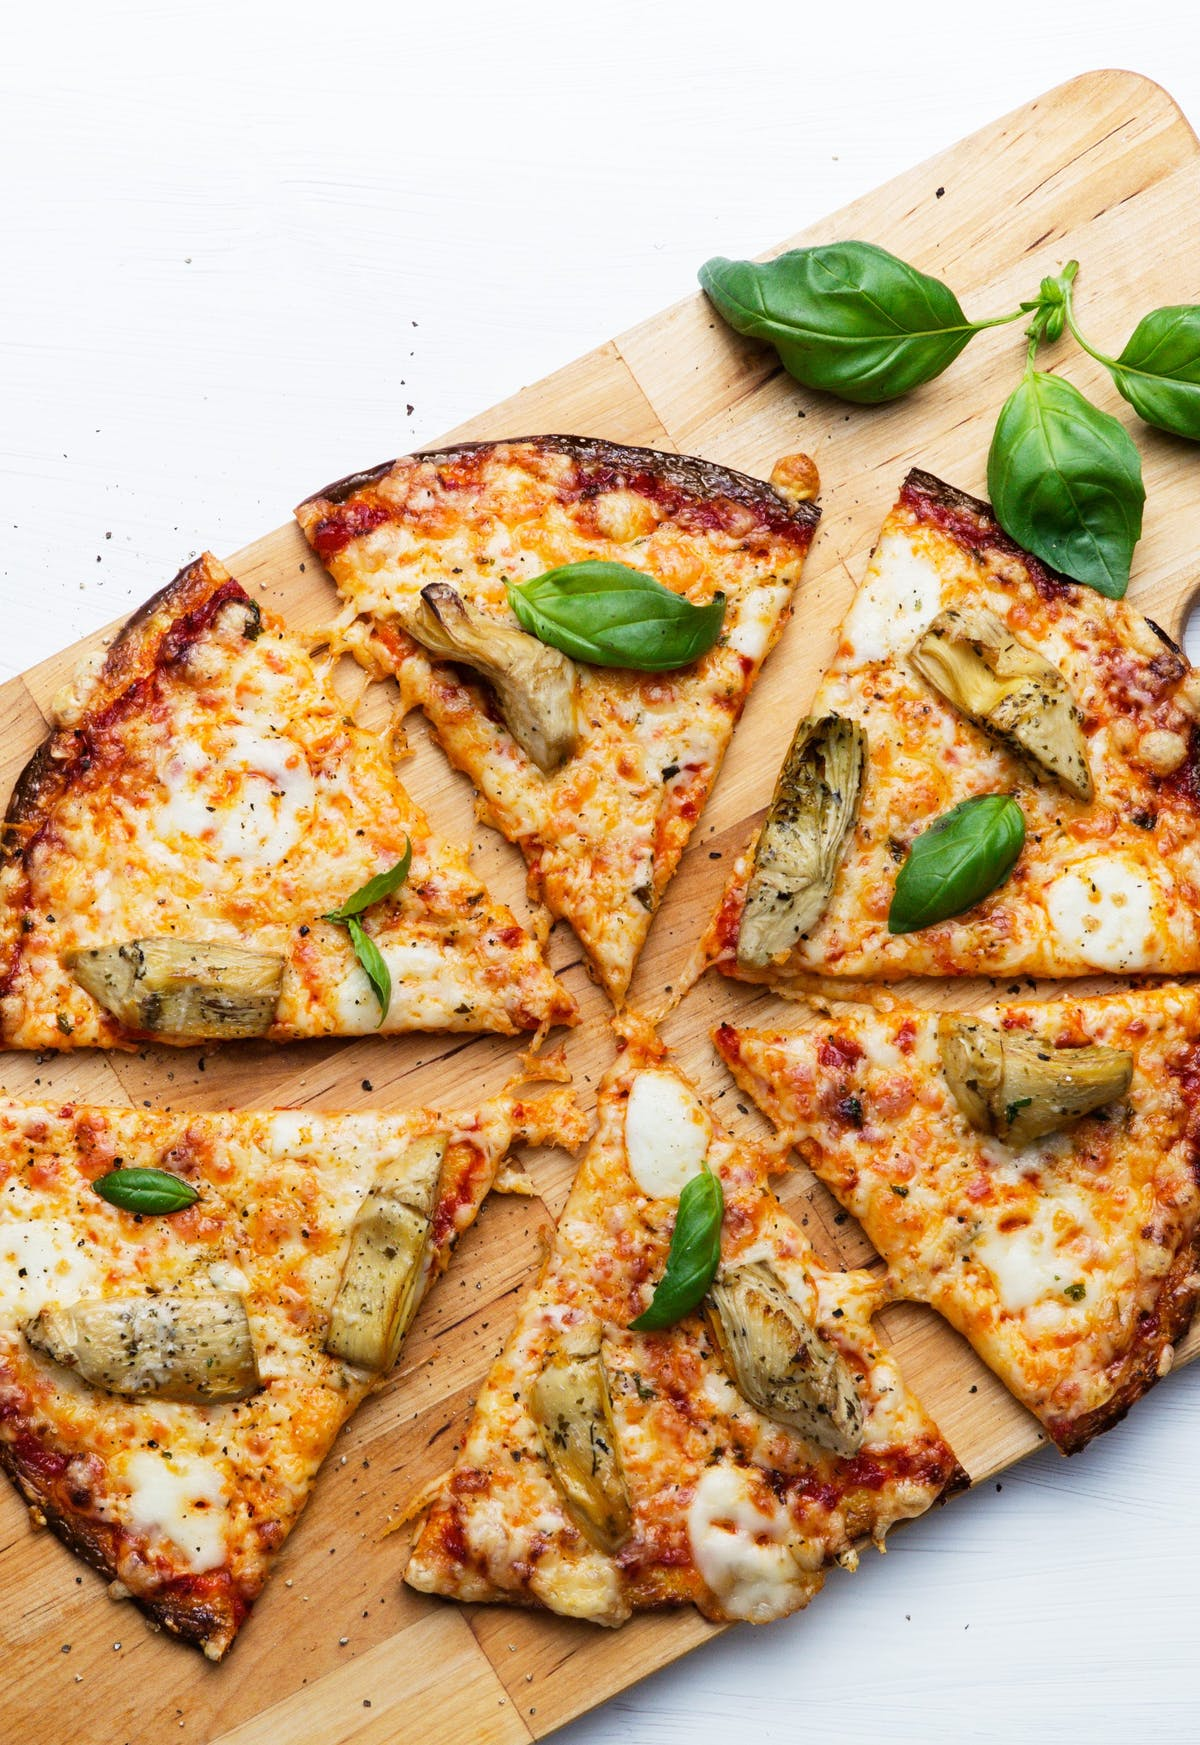 Low-carb cauliflower pizza with artichokes